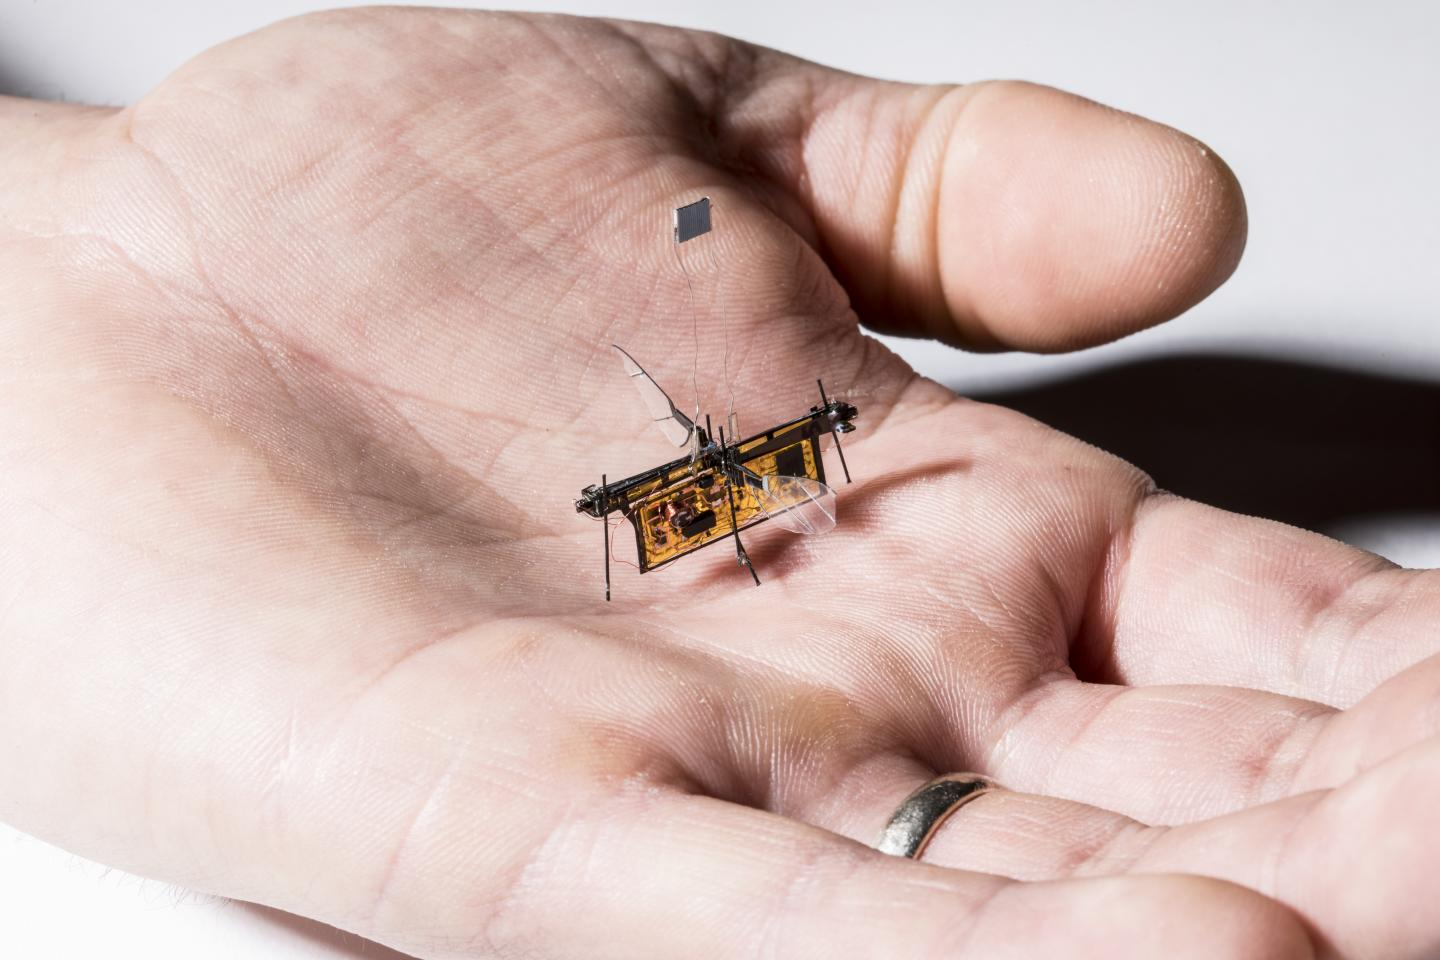 RoboFly fits in the Palm of Your Hand